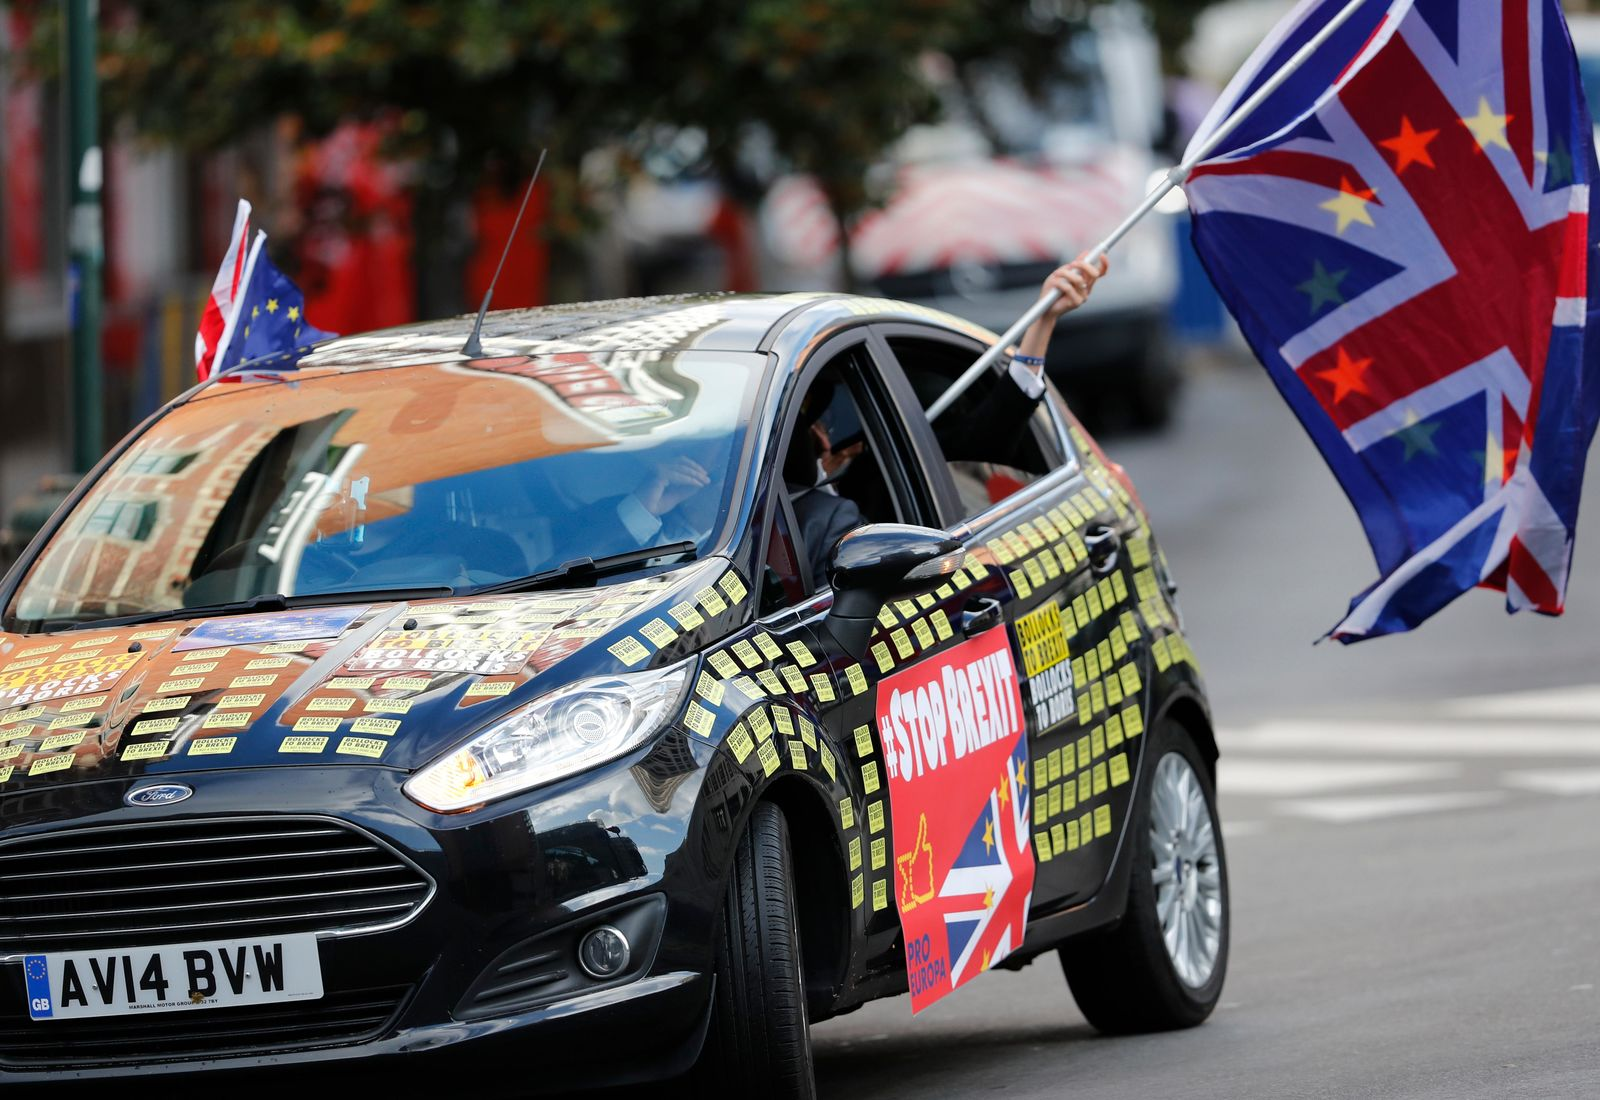 A man waves an EU and Union flag out of a car adorned with anti-Brexit decals in front of EU headquarters in Brussels, Thursday, Oct. 17, 2019.{ } (AP Photo/Frank Augstein)